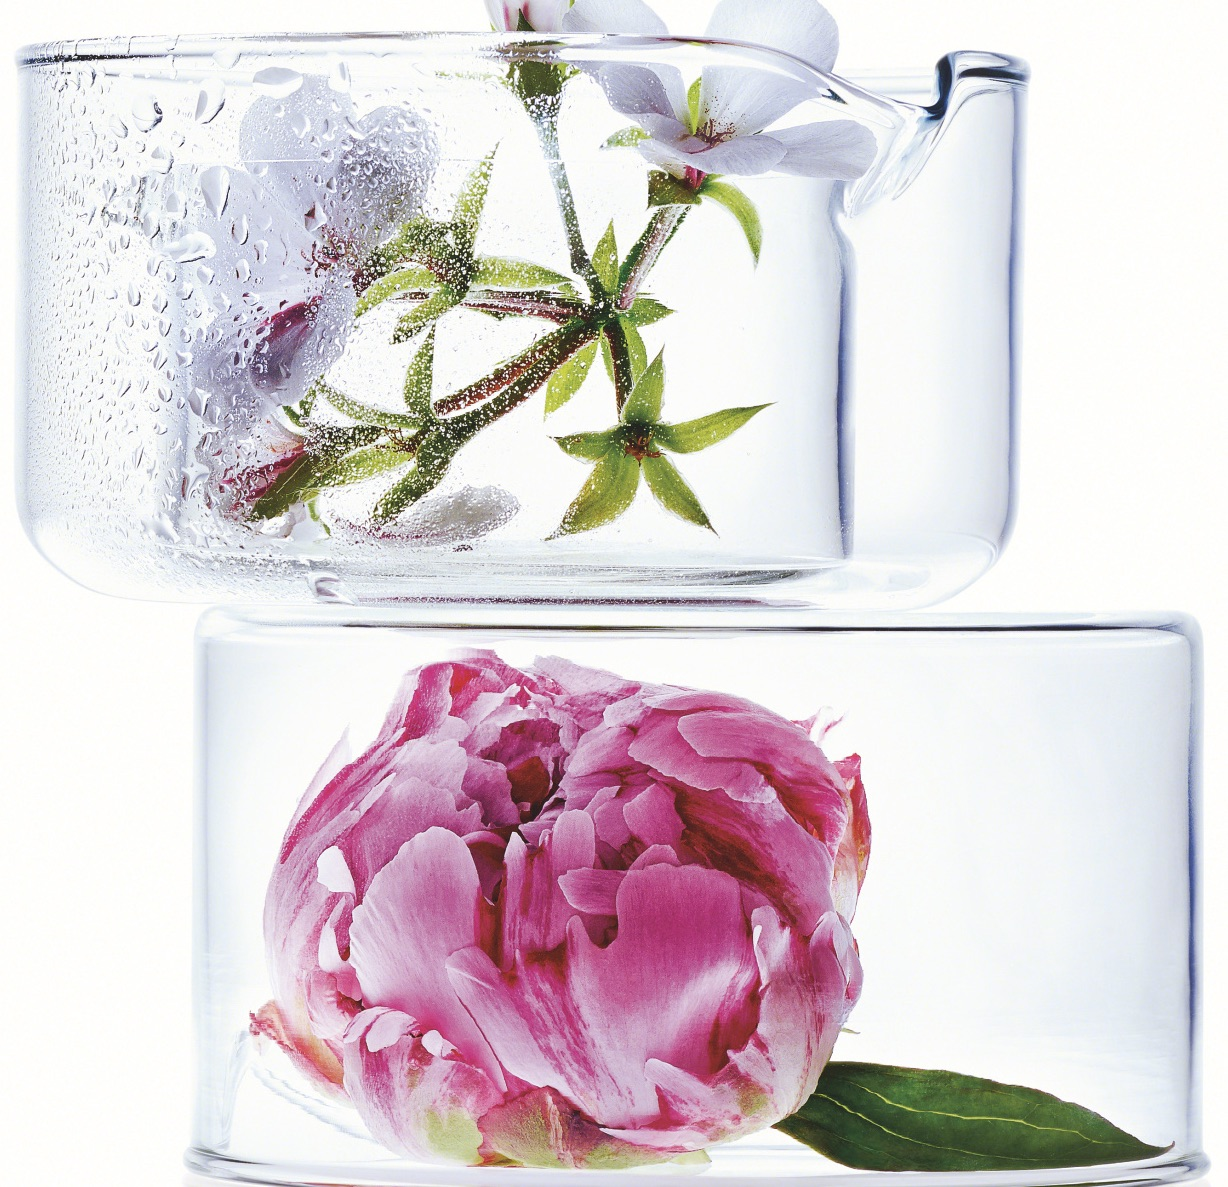 Rose Blossom Revitalizing Care By Annemarie Borlind